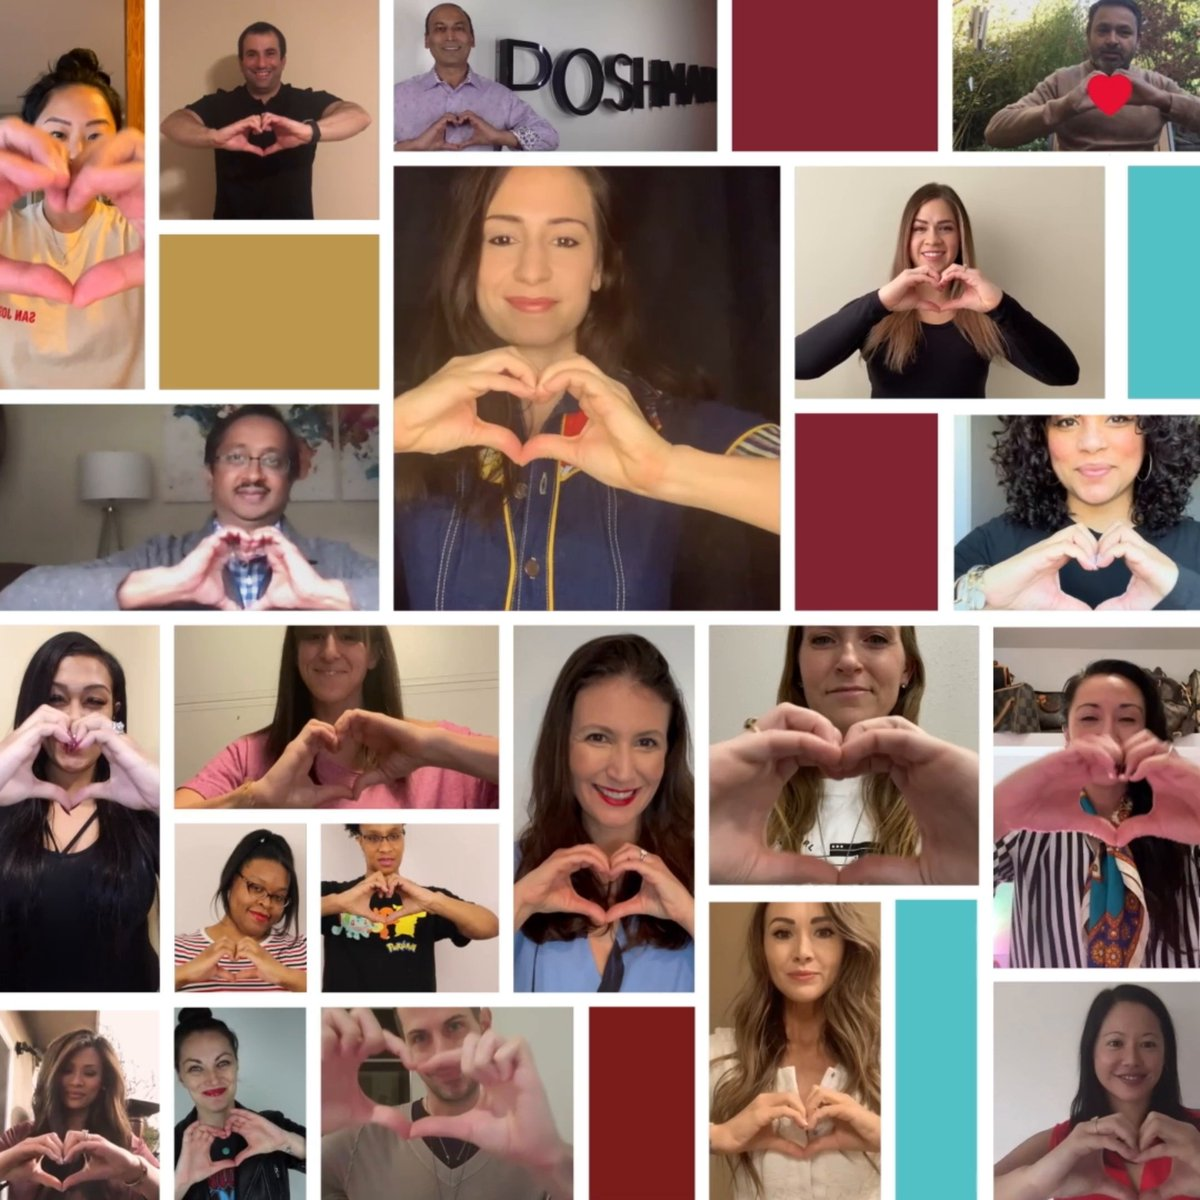 Today, we celebrate a milestone in the Poshmark journey together. Thank you to our vibrant community, millions of people across the U.S. and Canada, for choosing Poshmark as the place to shop, sell, and thrive.   Join us as we ring the bell together: